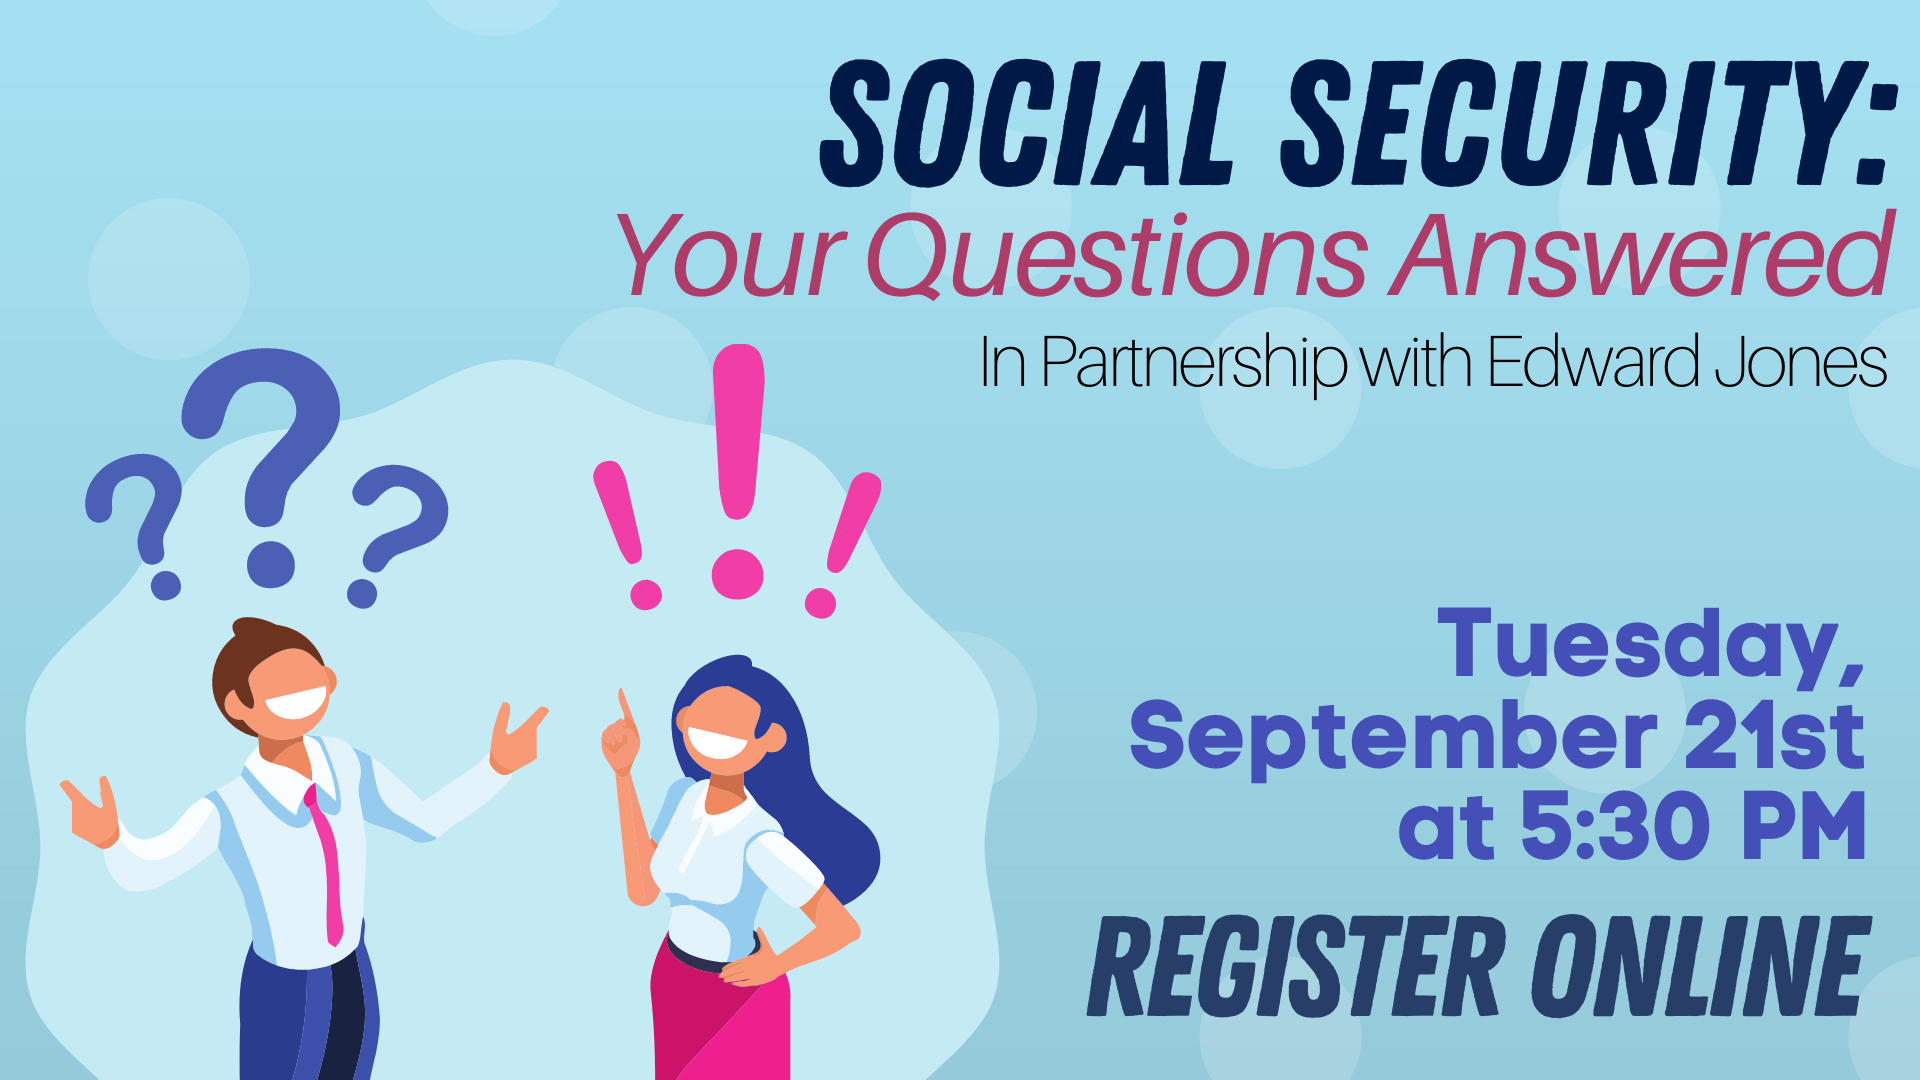 Social Security: Your Questions Answered